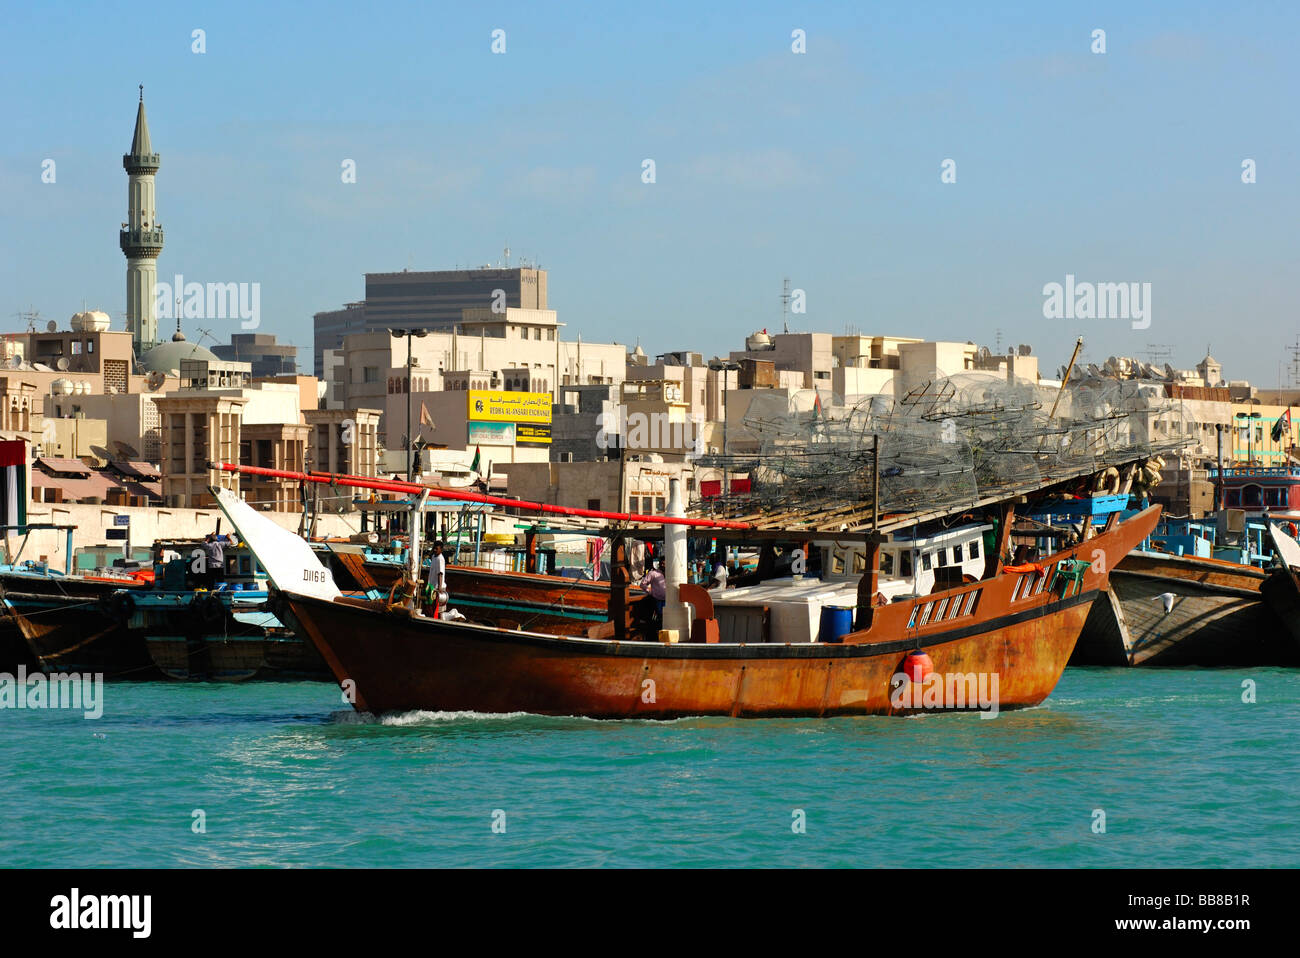 A traditional fisher boat heading out to fish loaded with bow nets in the Dubai Creek in front of the back-drop - Stock Image